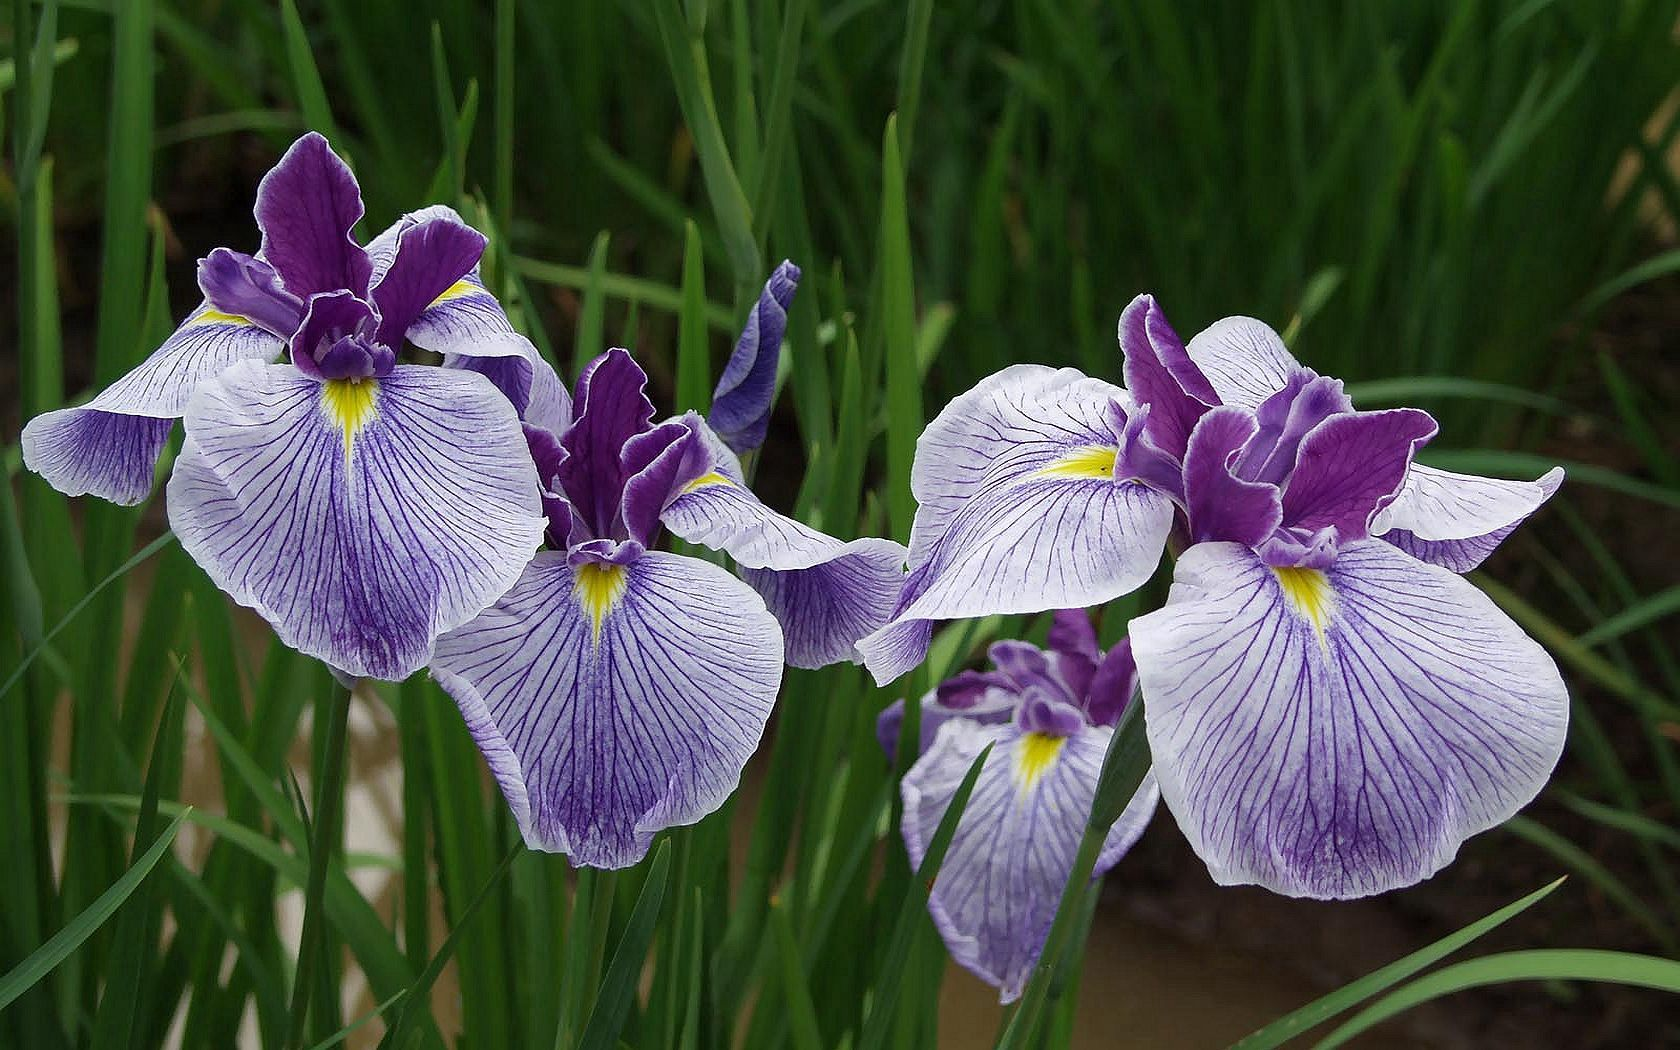 153313 download wallpaper Flowers, Irises, Greens, Close-Up screensavers and pictures for free